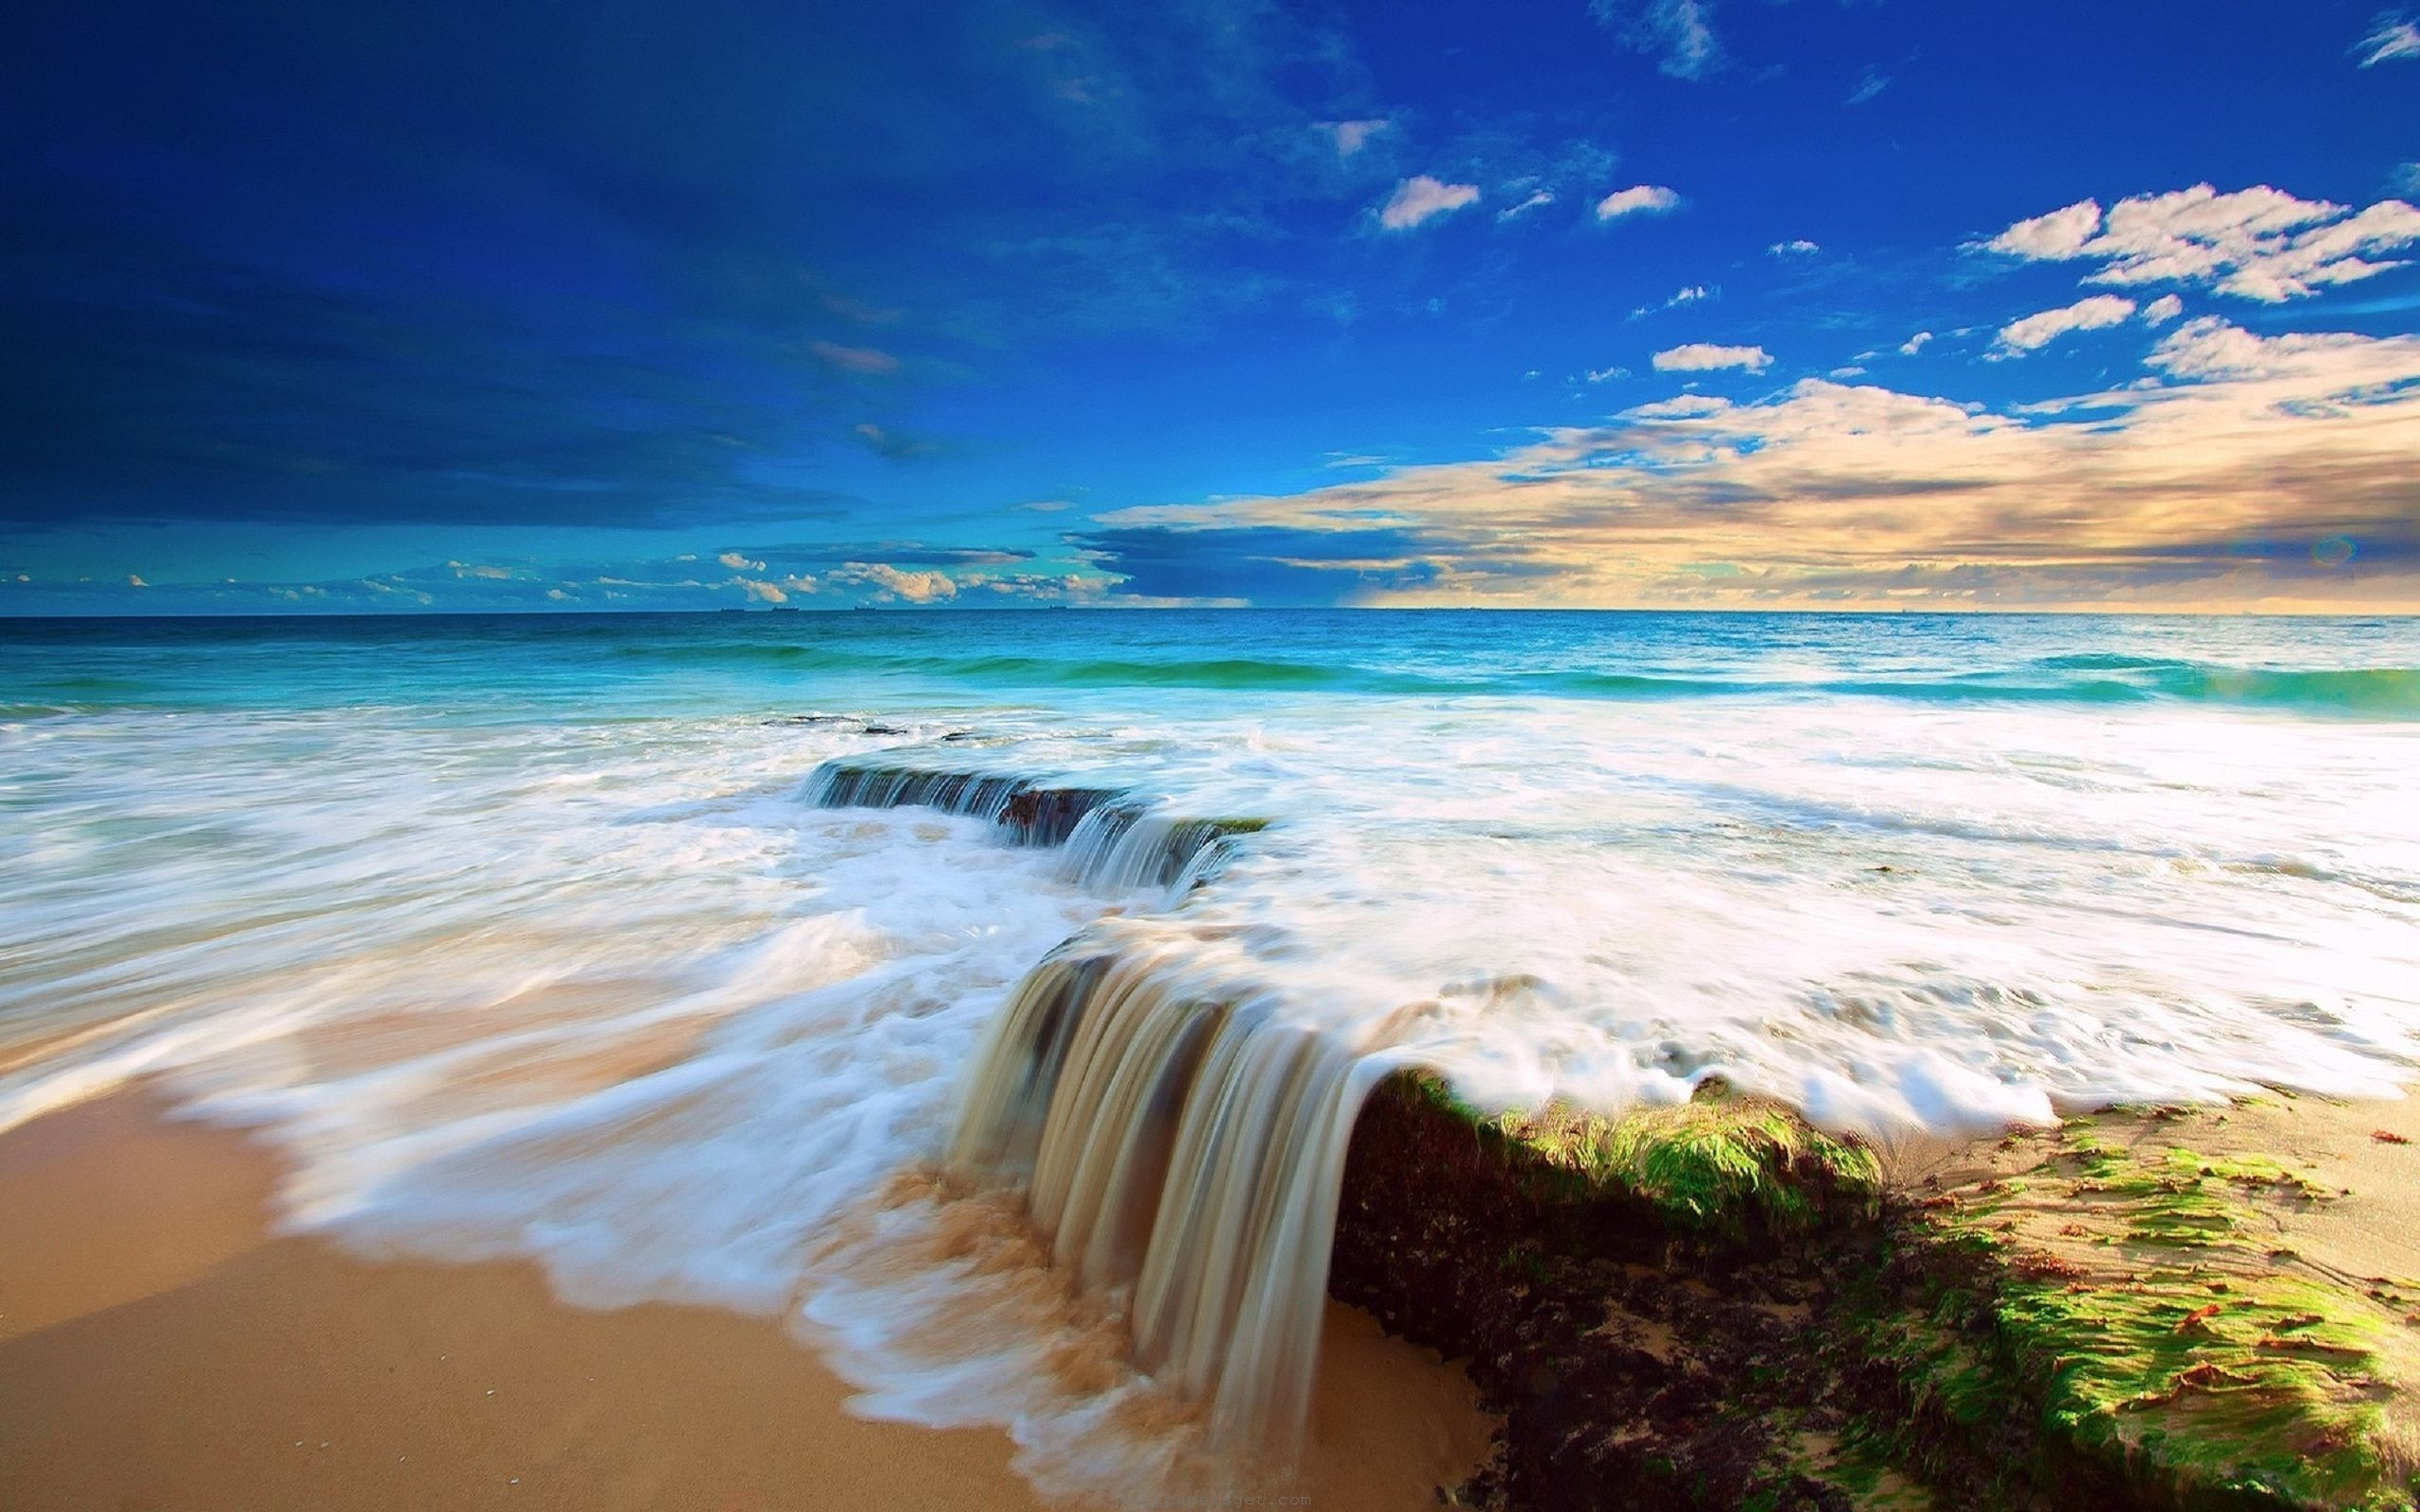 Beautiful Beach Ocean Water HD Wallpaper Download awesome, Nice and High  Quality #HD #